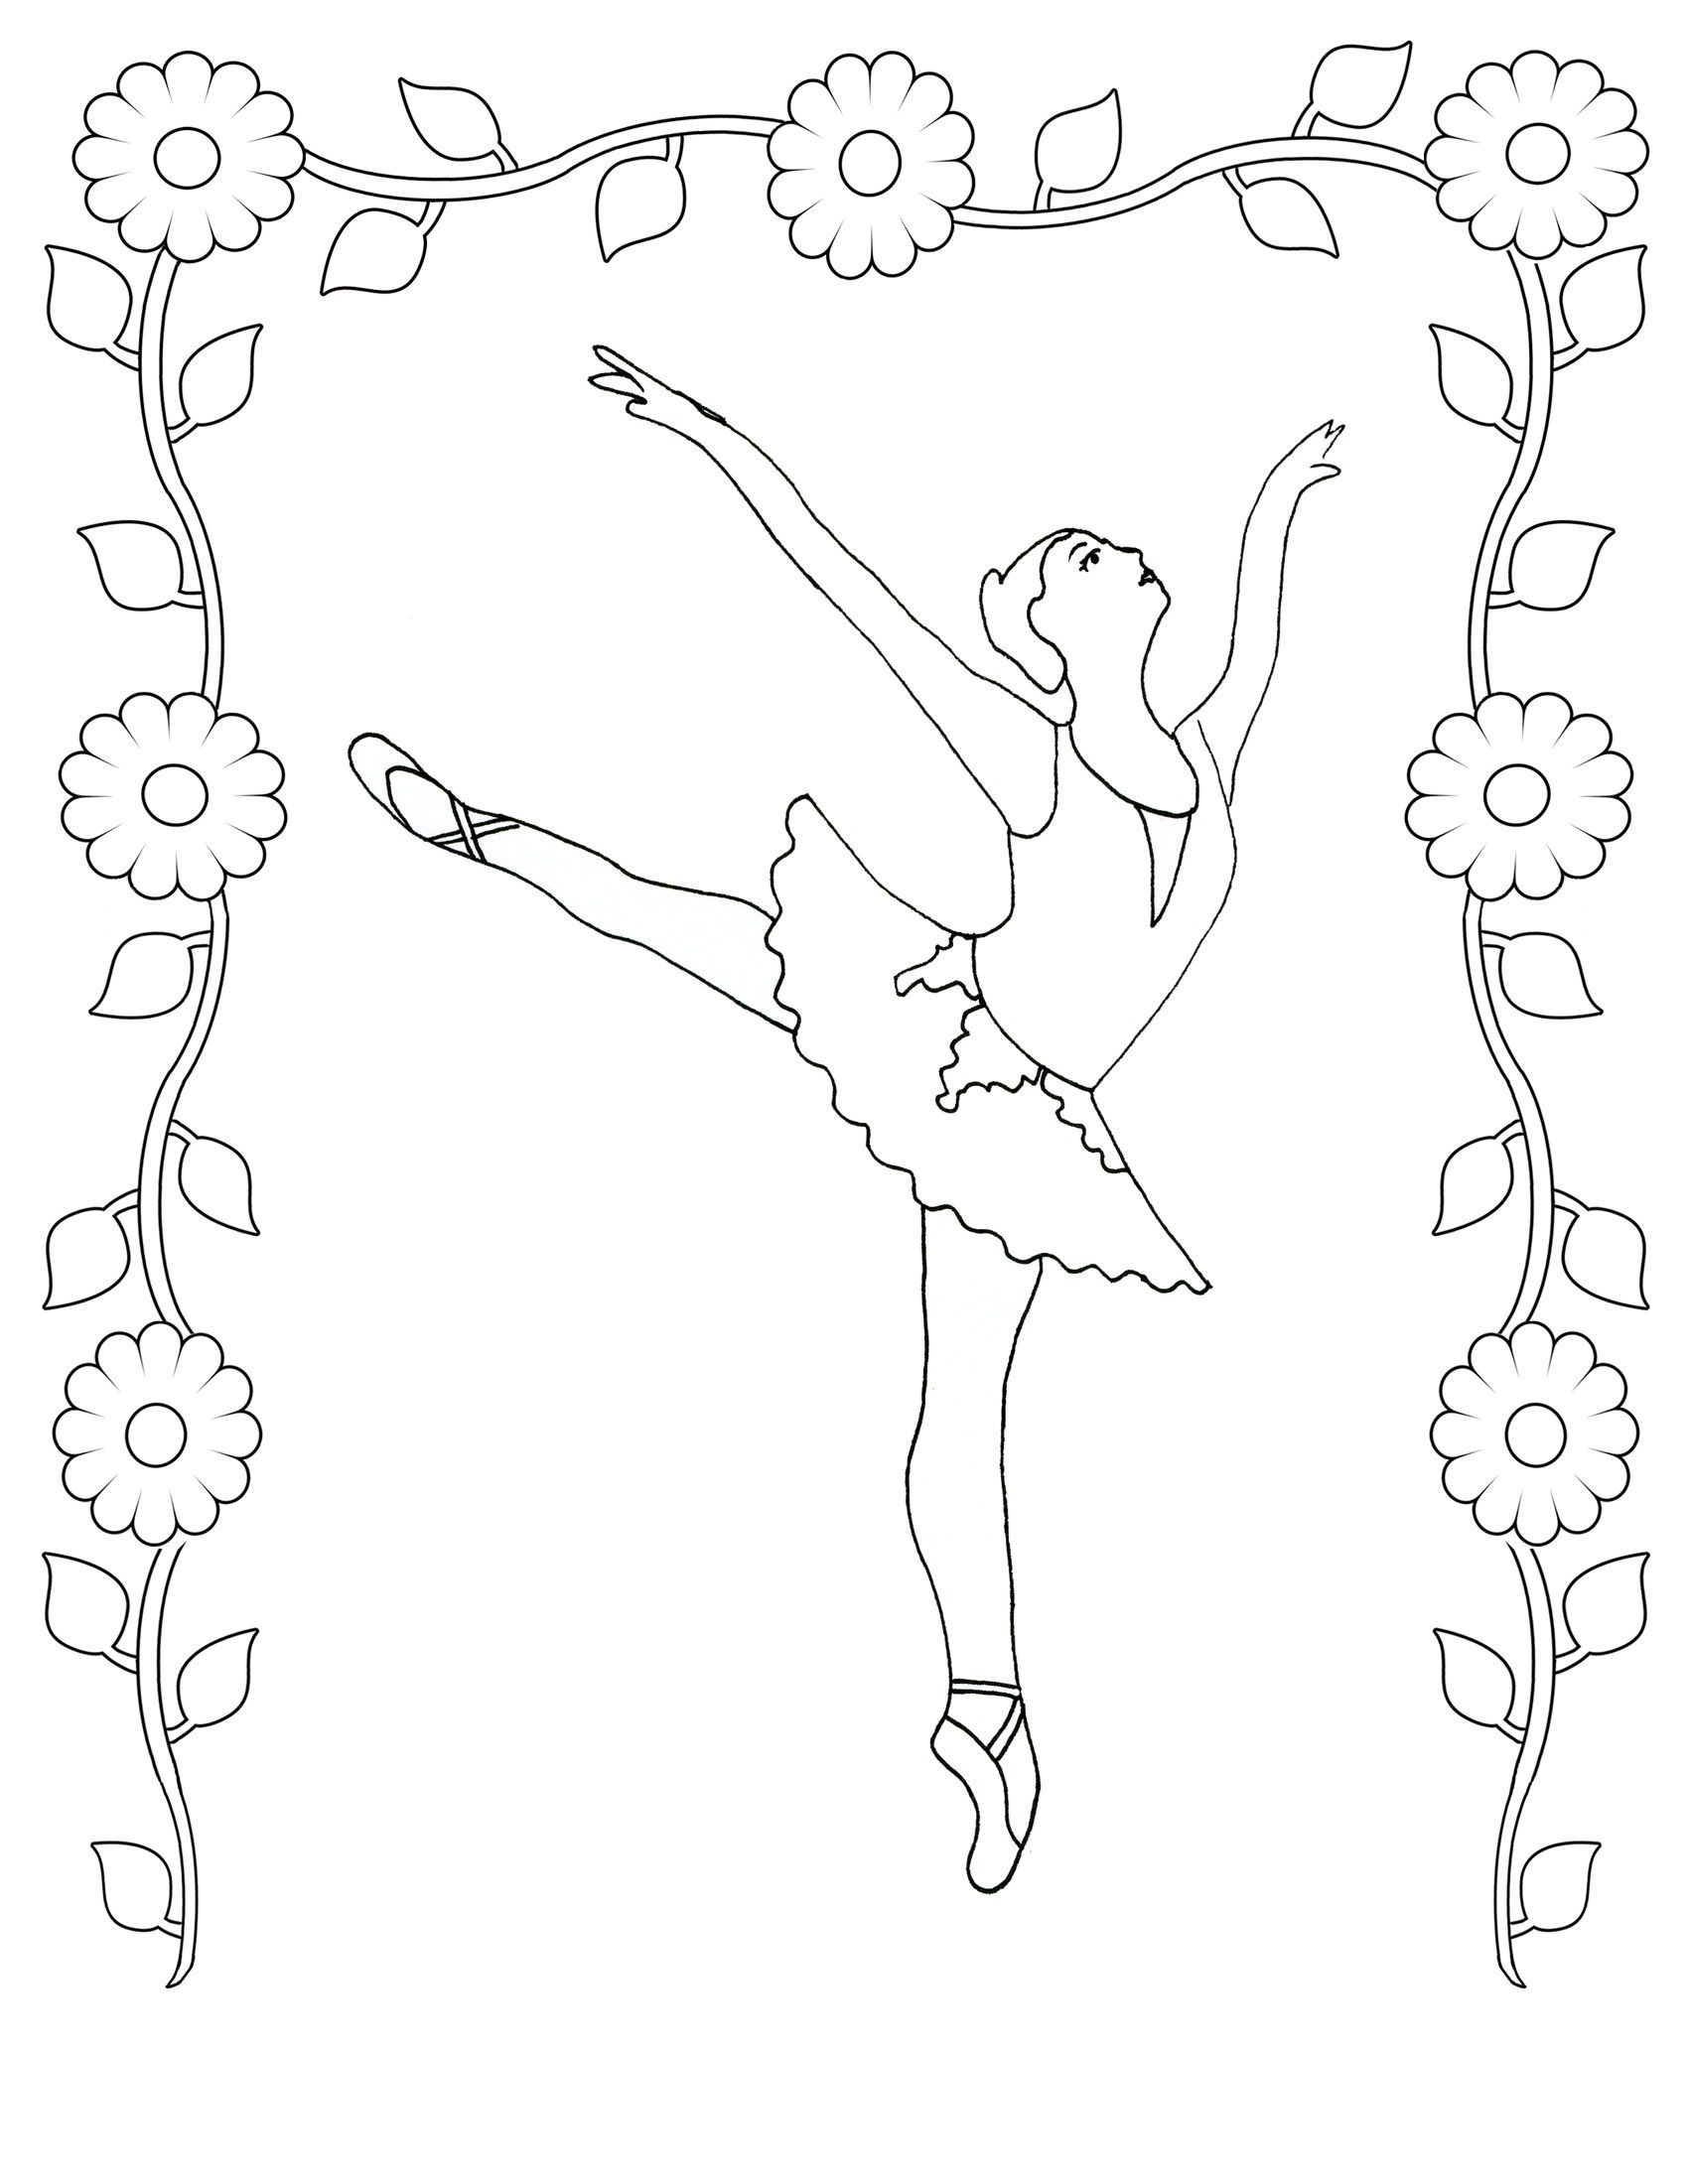 Jazz Dance Coloring Pages For Kids